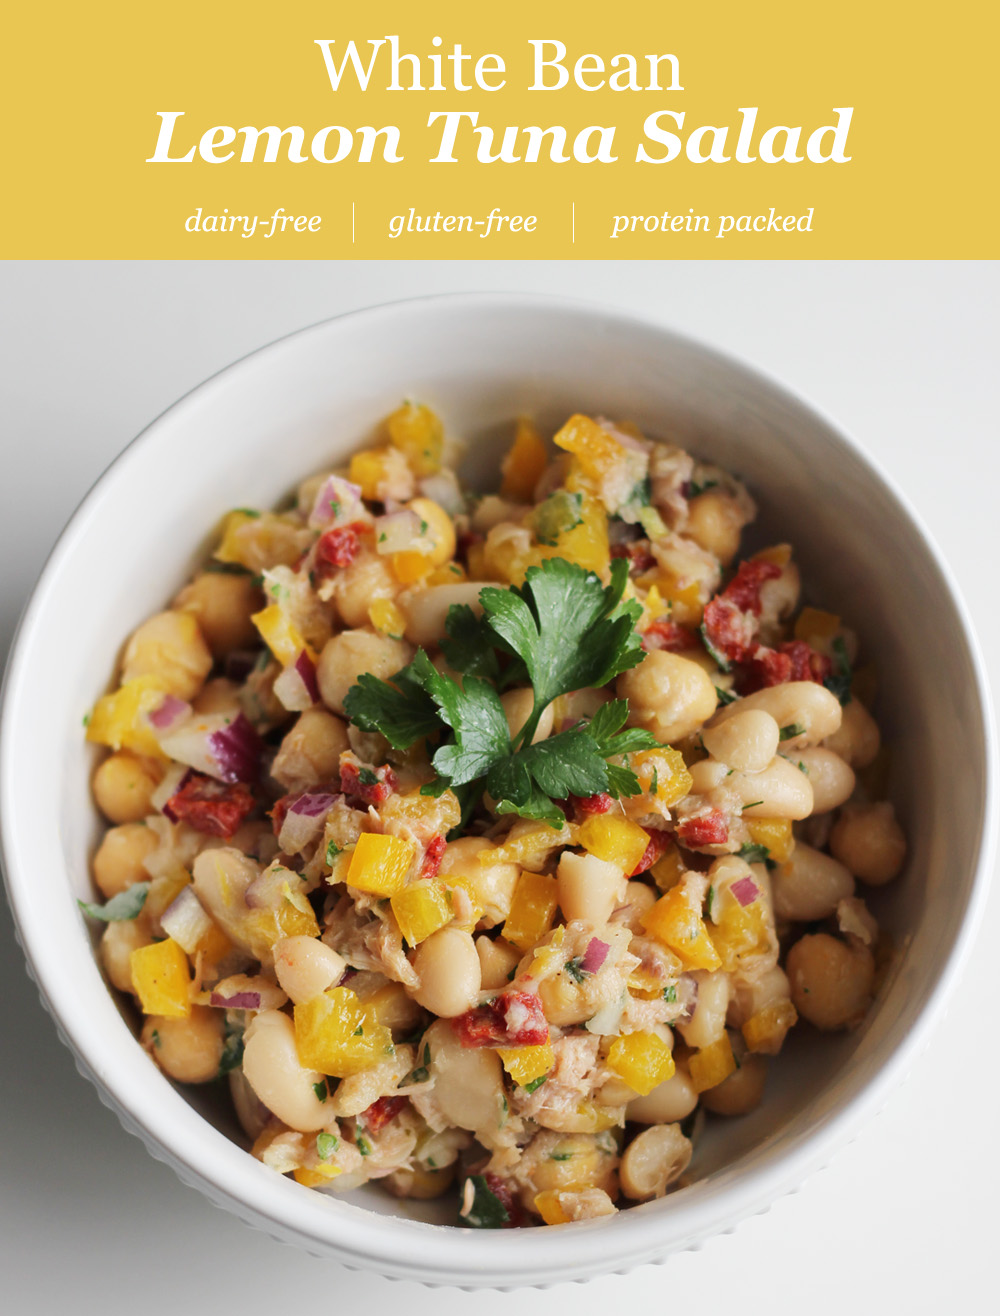 White Bean Lemon Tuna Salad